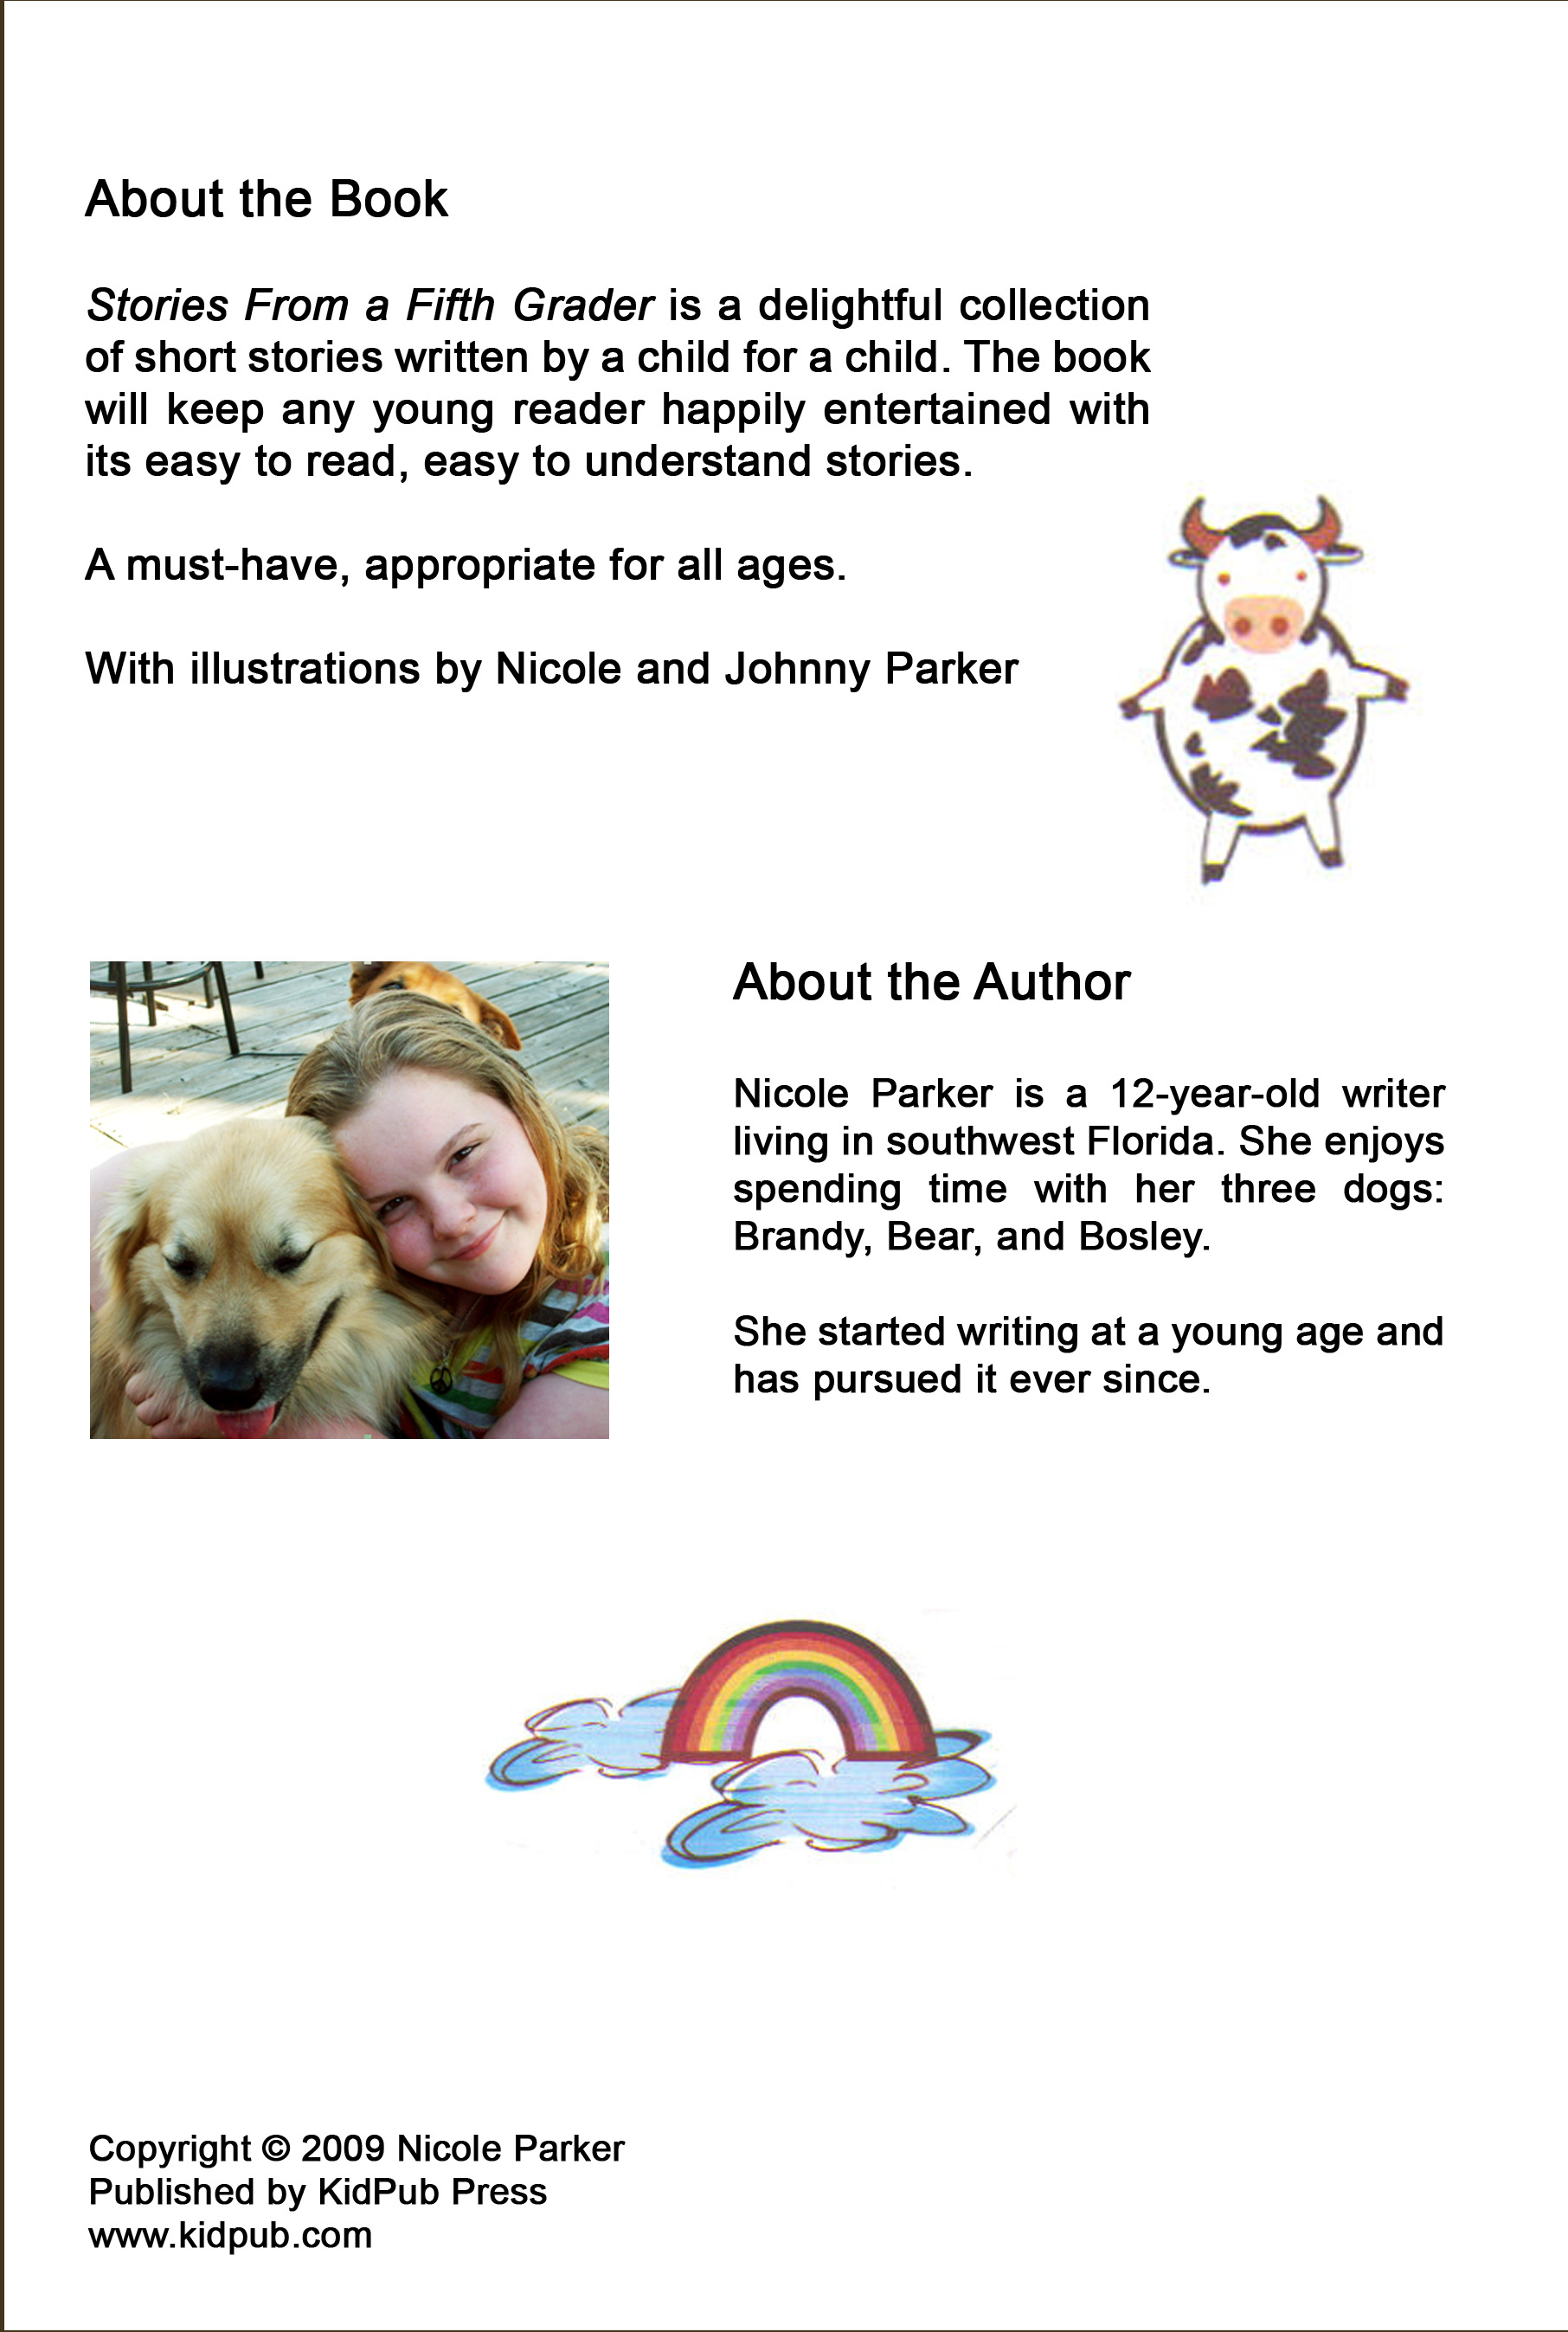 Worksheet Fifth Grade Short Stories stories from a 5th grader by nicole parker kidpub press click for large view about the book fifth grader